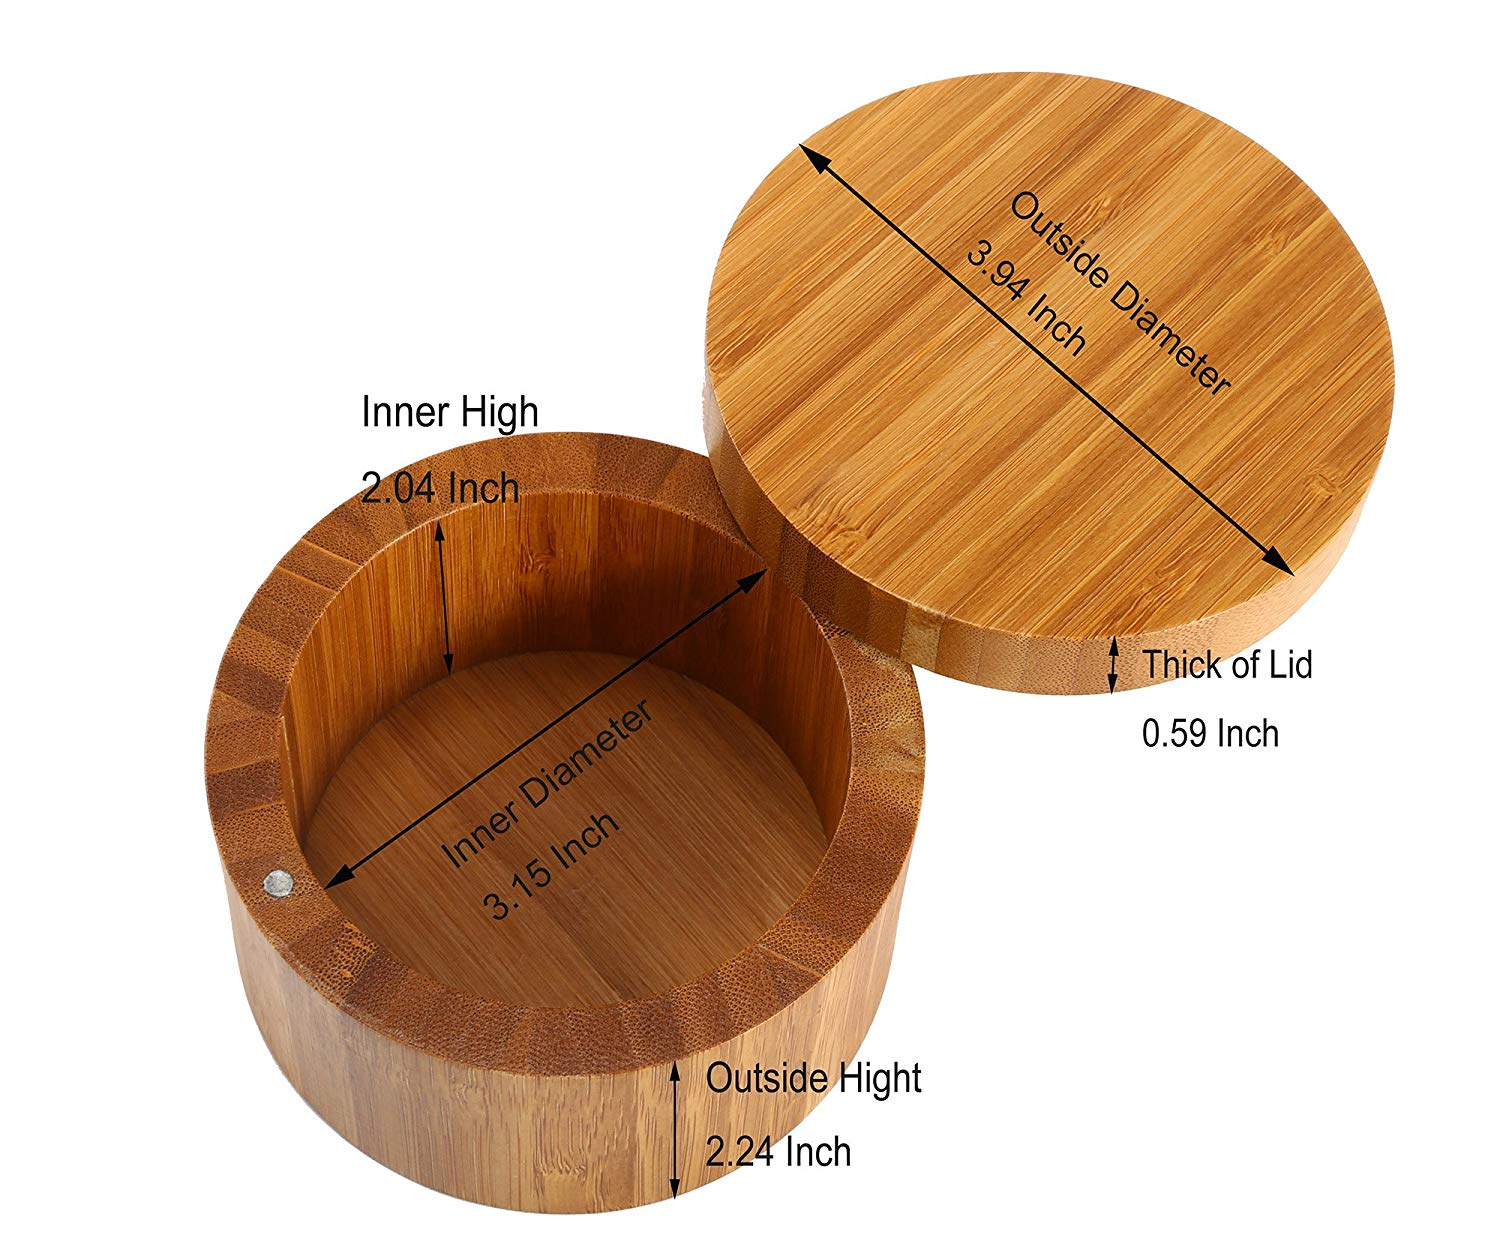 100% Bamboo 8.5Oz Spice Salt Box Container With Magnetic Swivel Lid